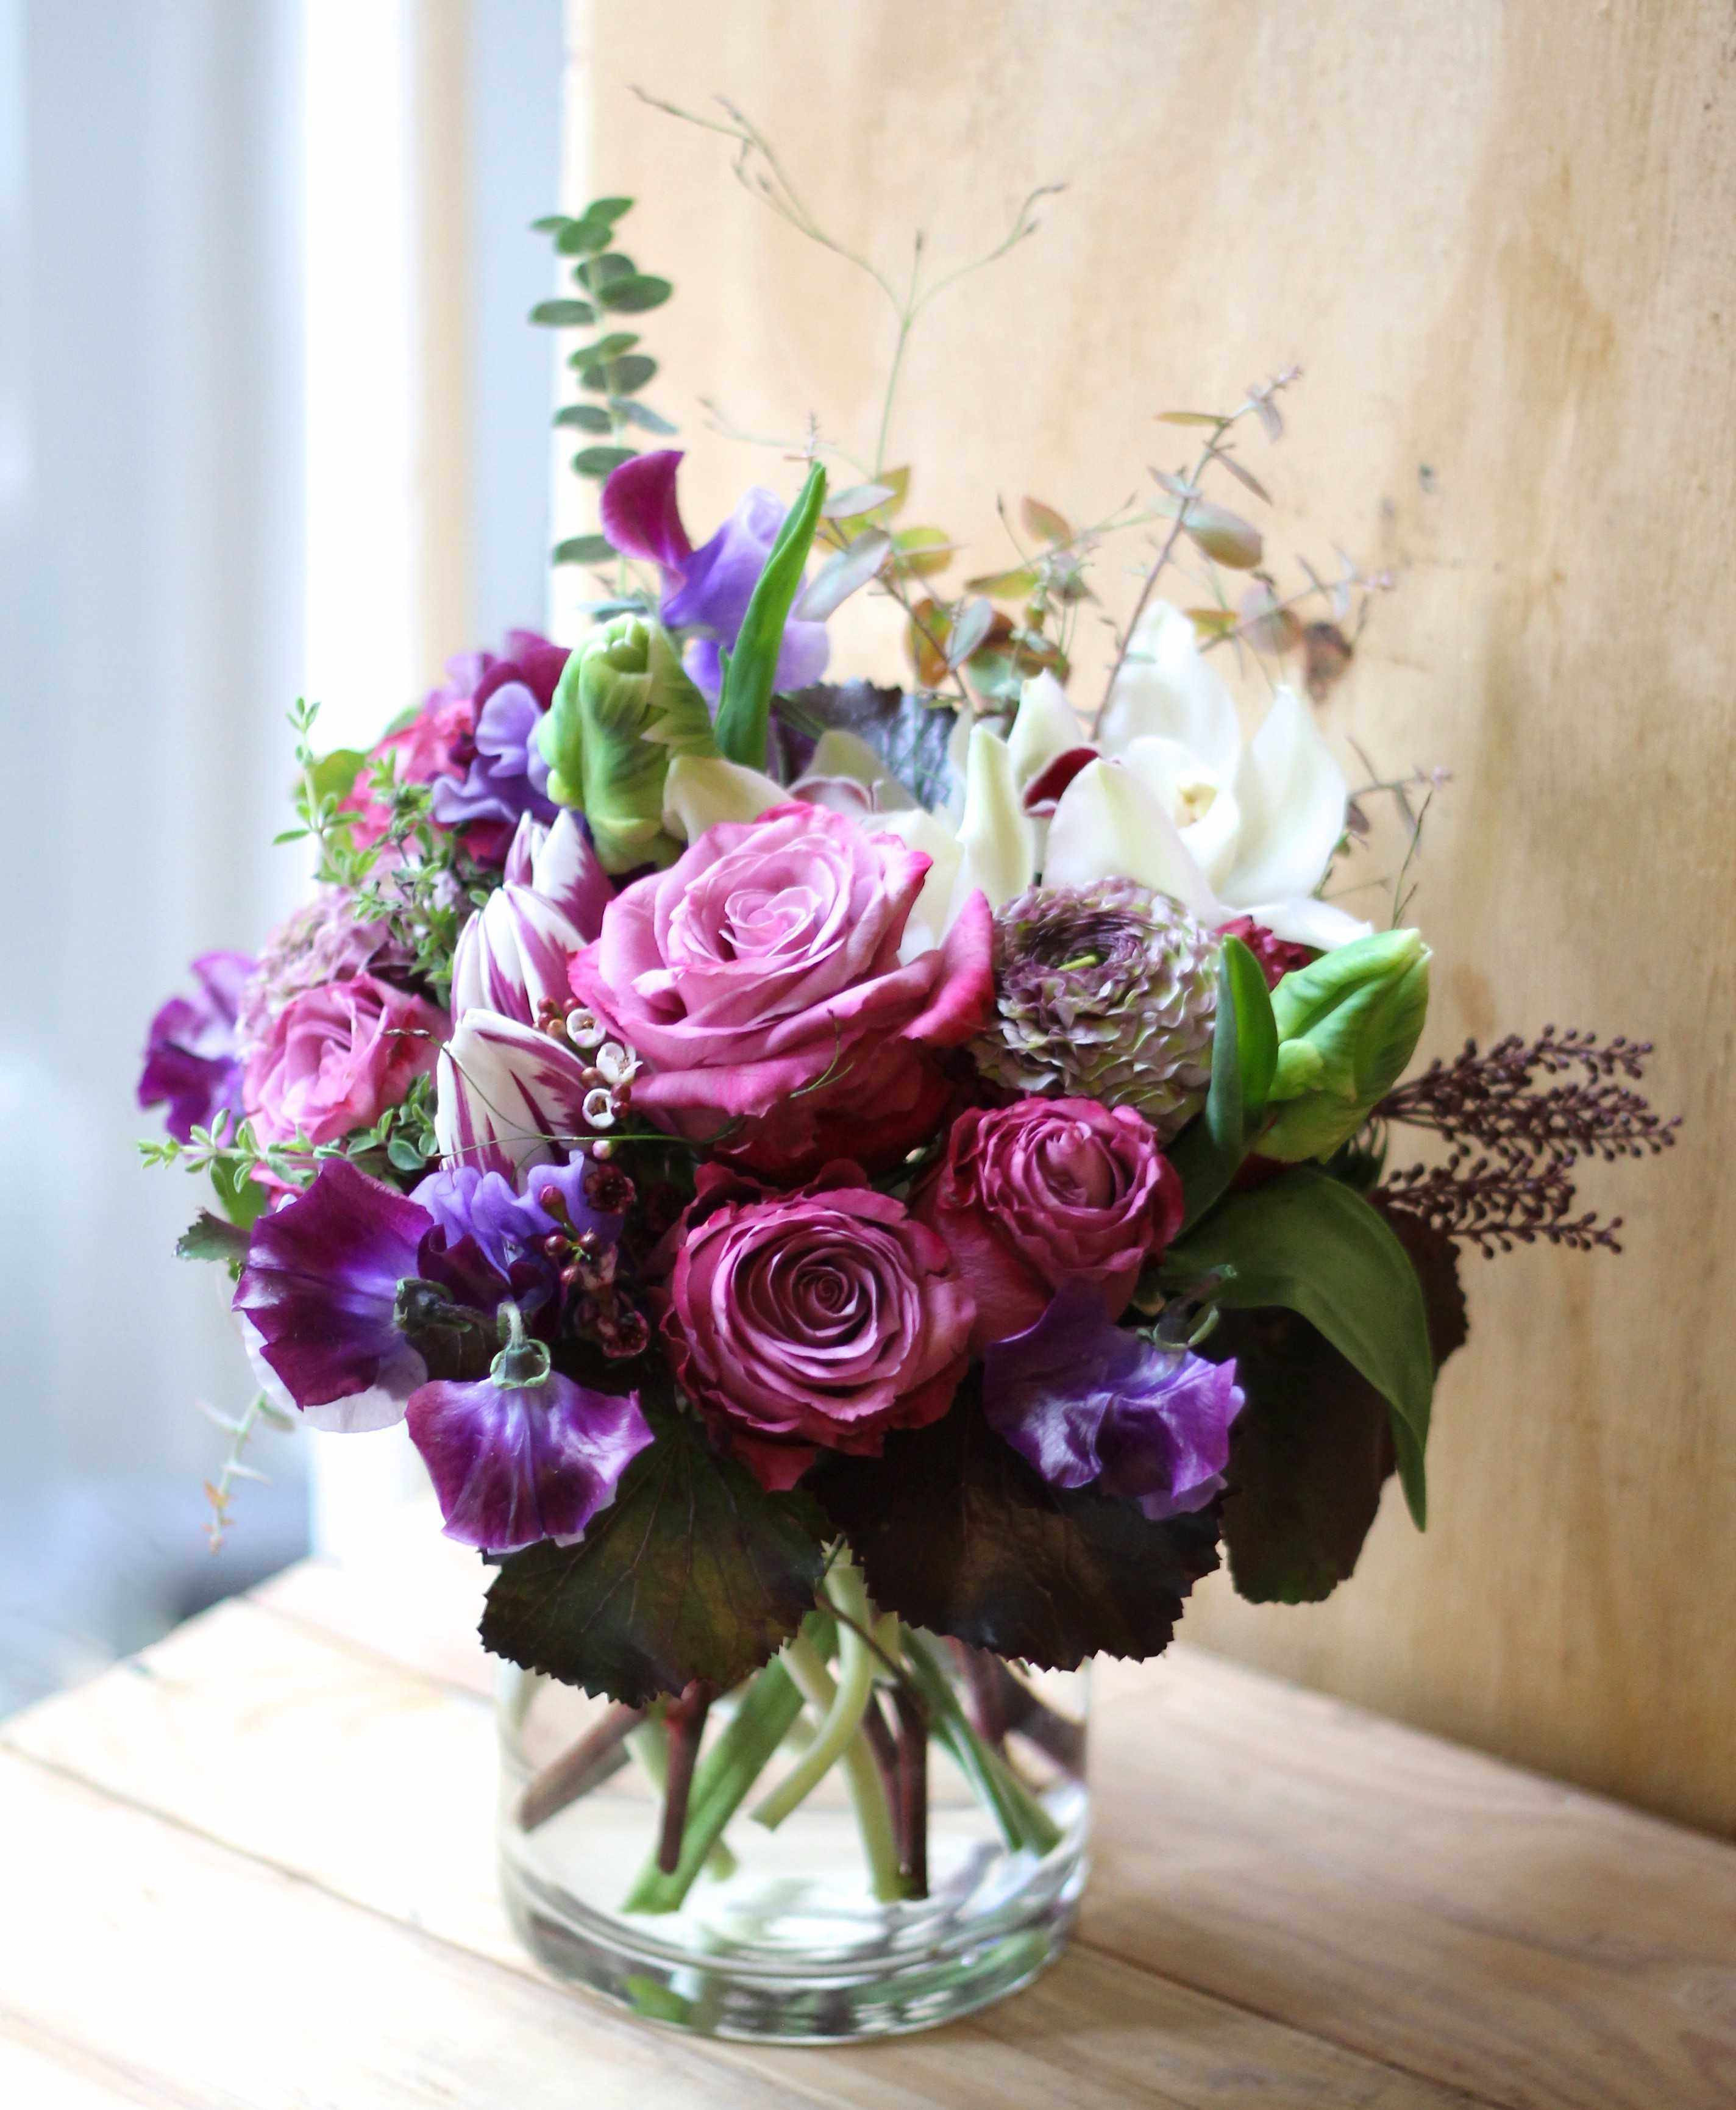 Rose Delivery Nyc Best Of Best Flower Delivery New Flower Nyc Florist In Brooklyn Flower